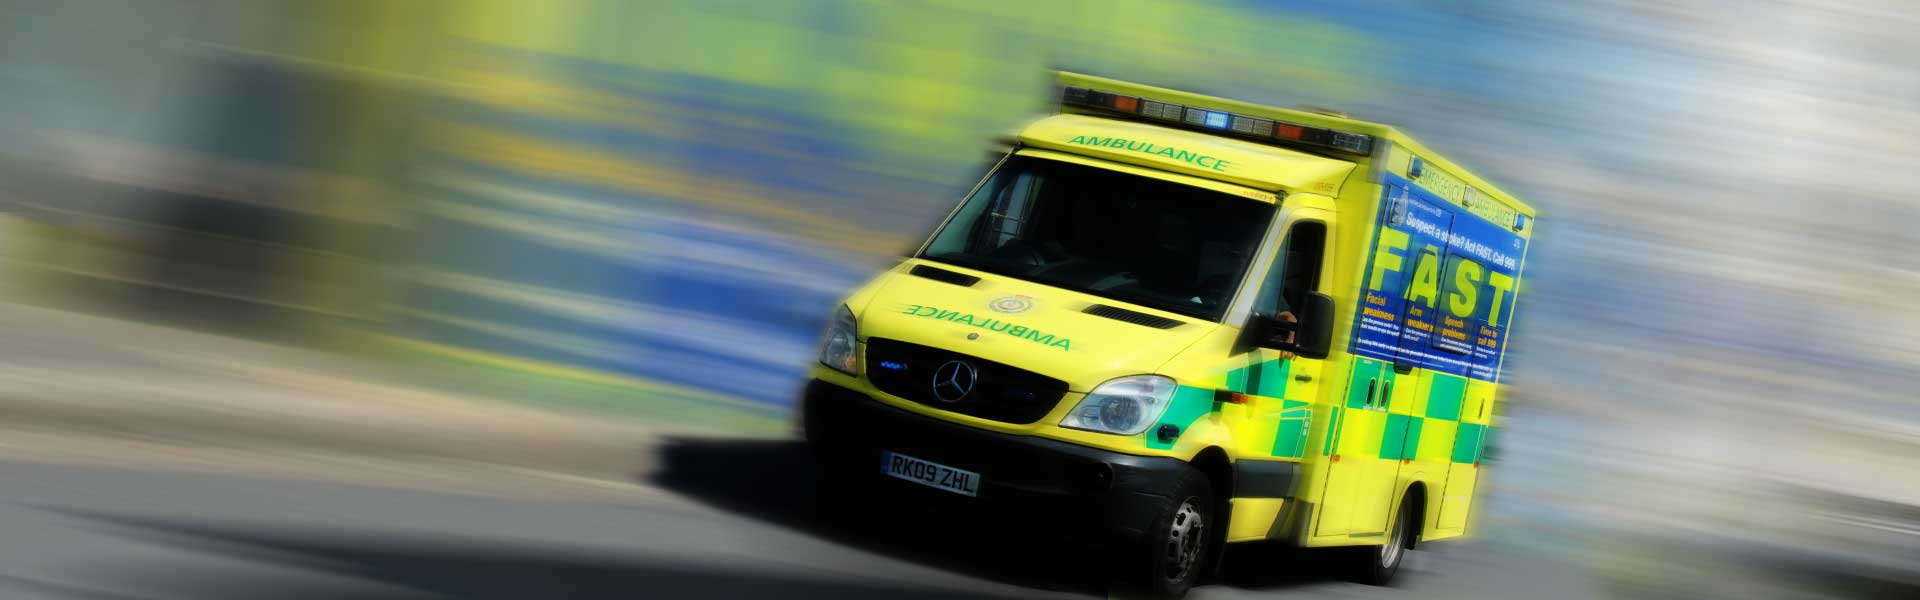 Kent Ambulance with stroke advice on side